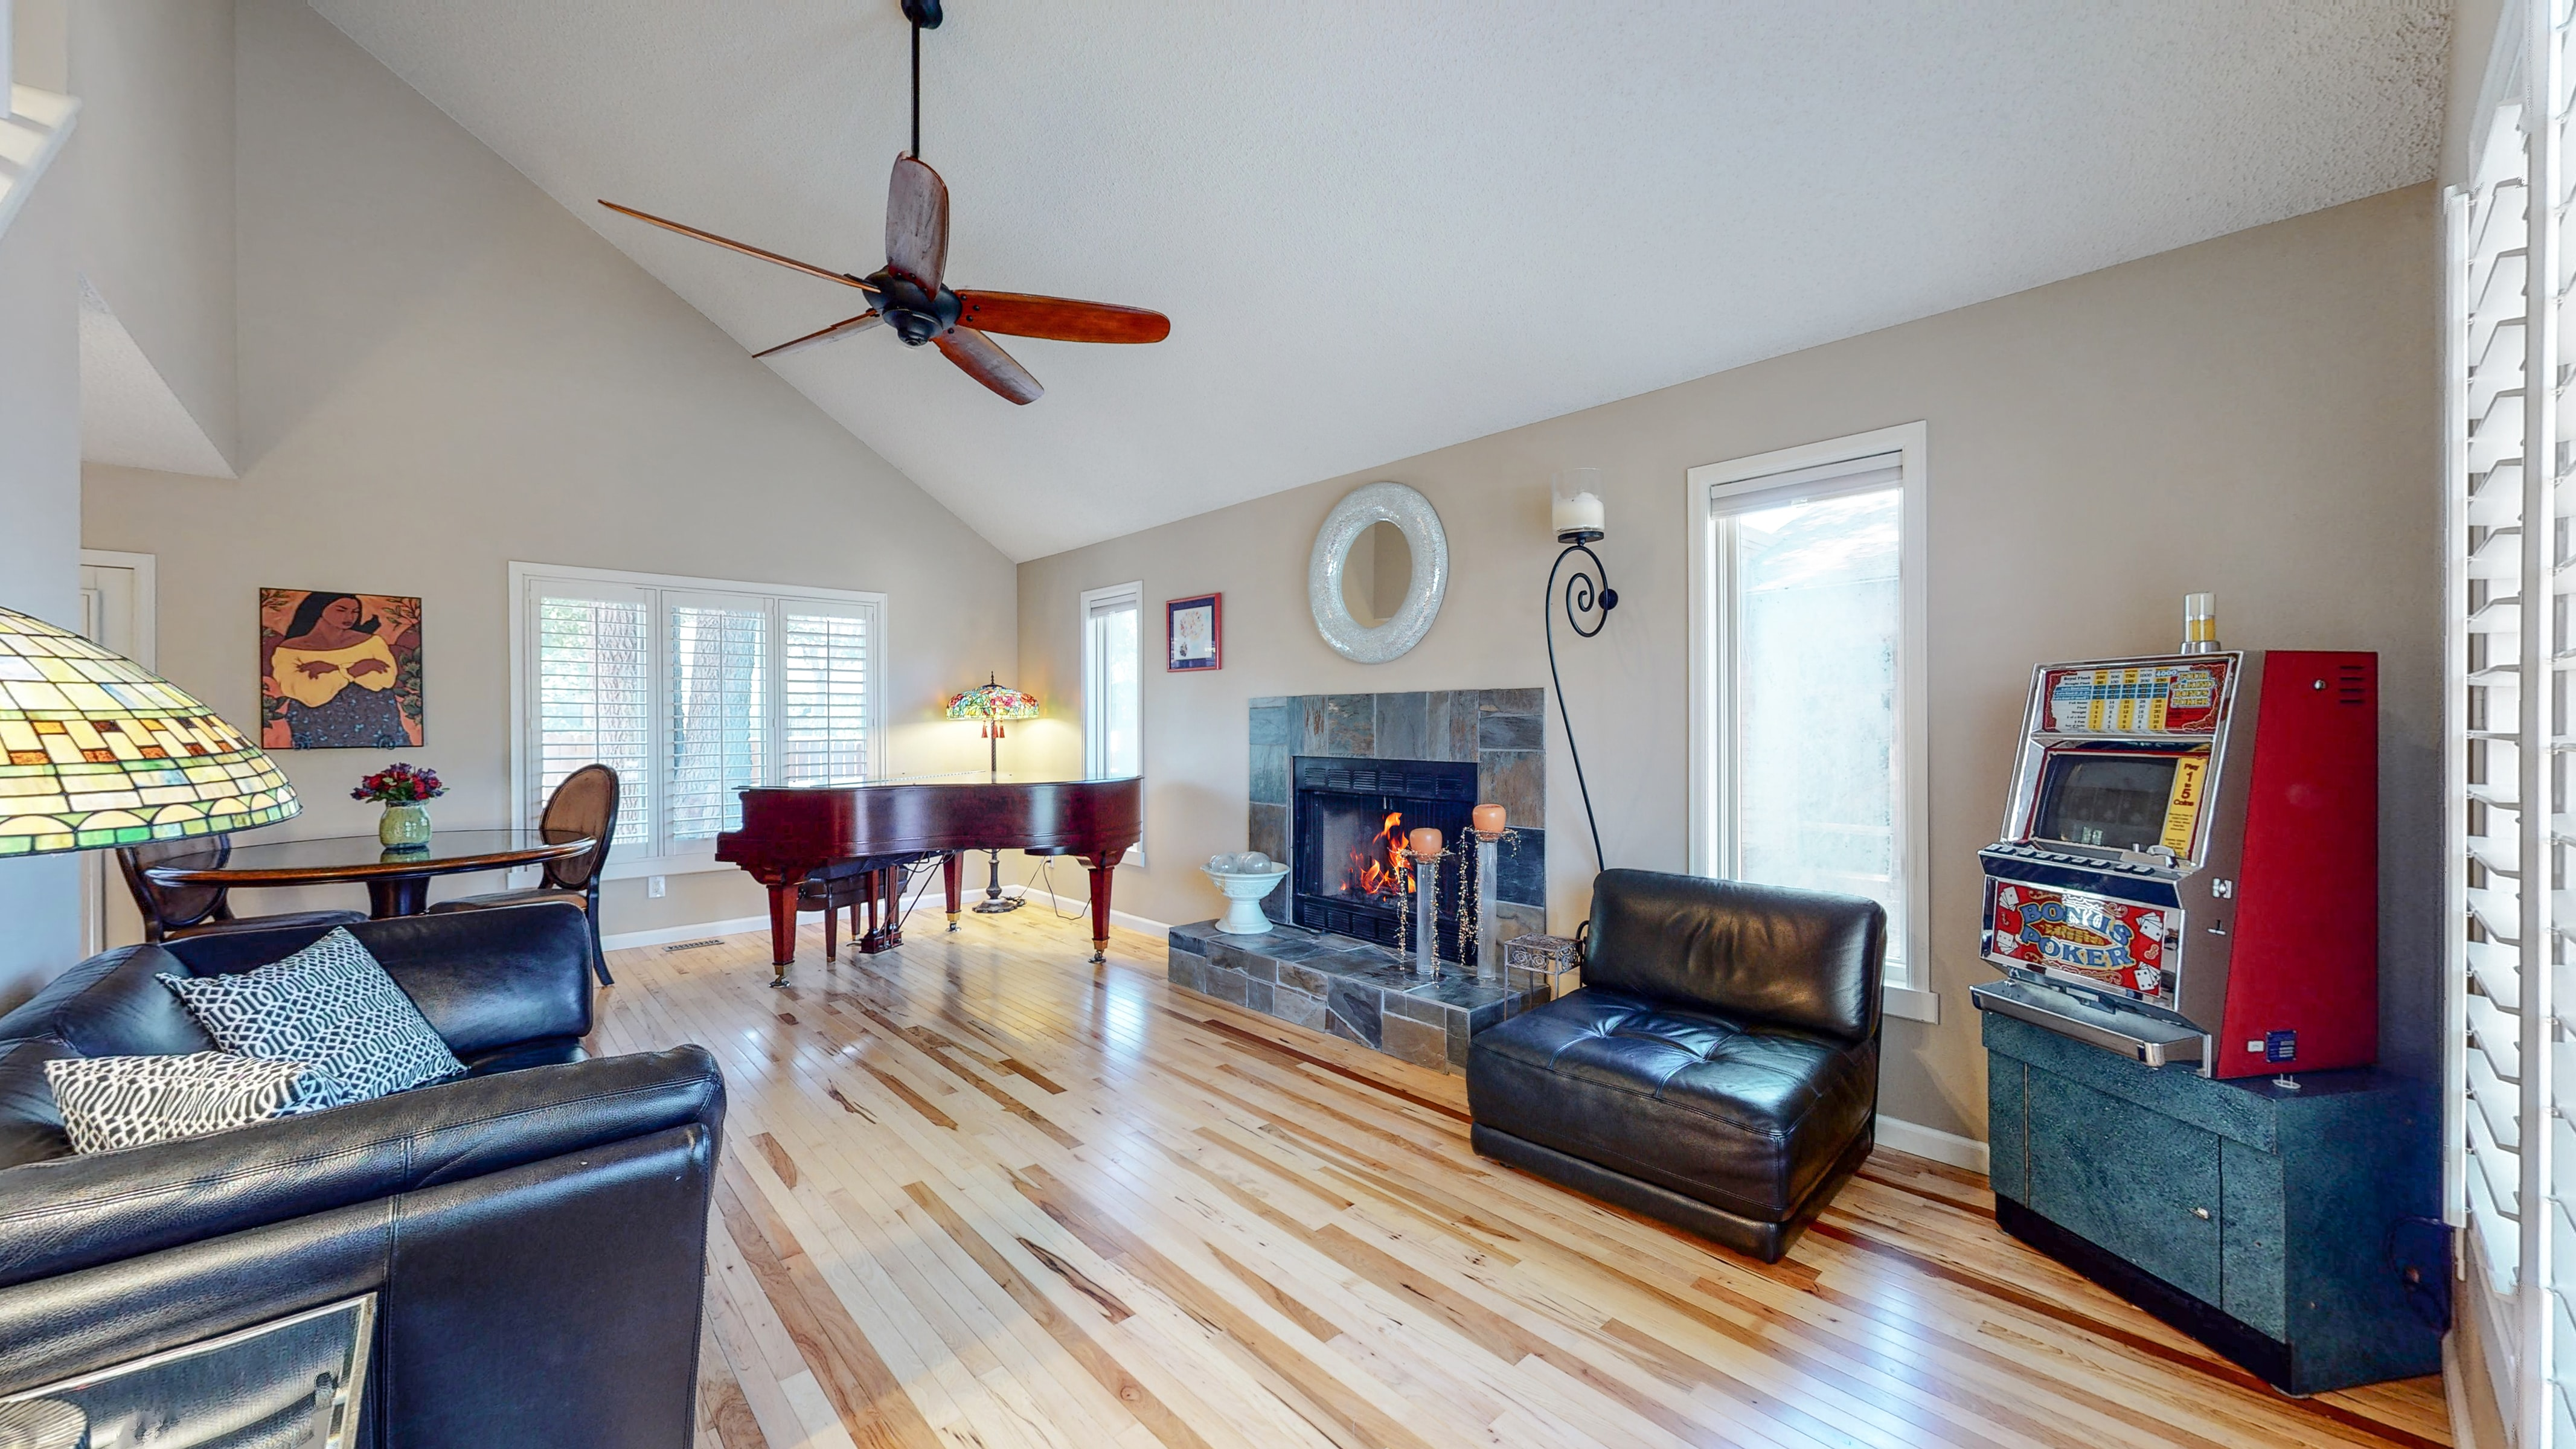 Living Room with real hardwood floors and white shutters